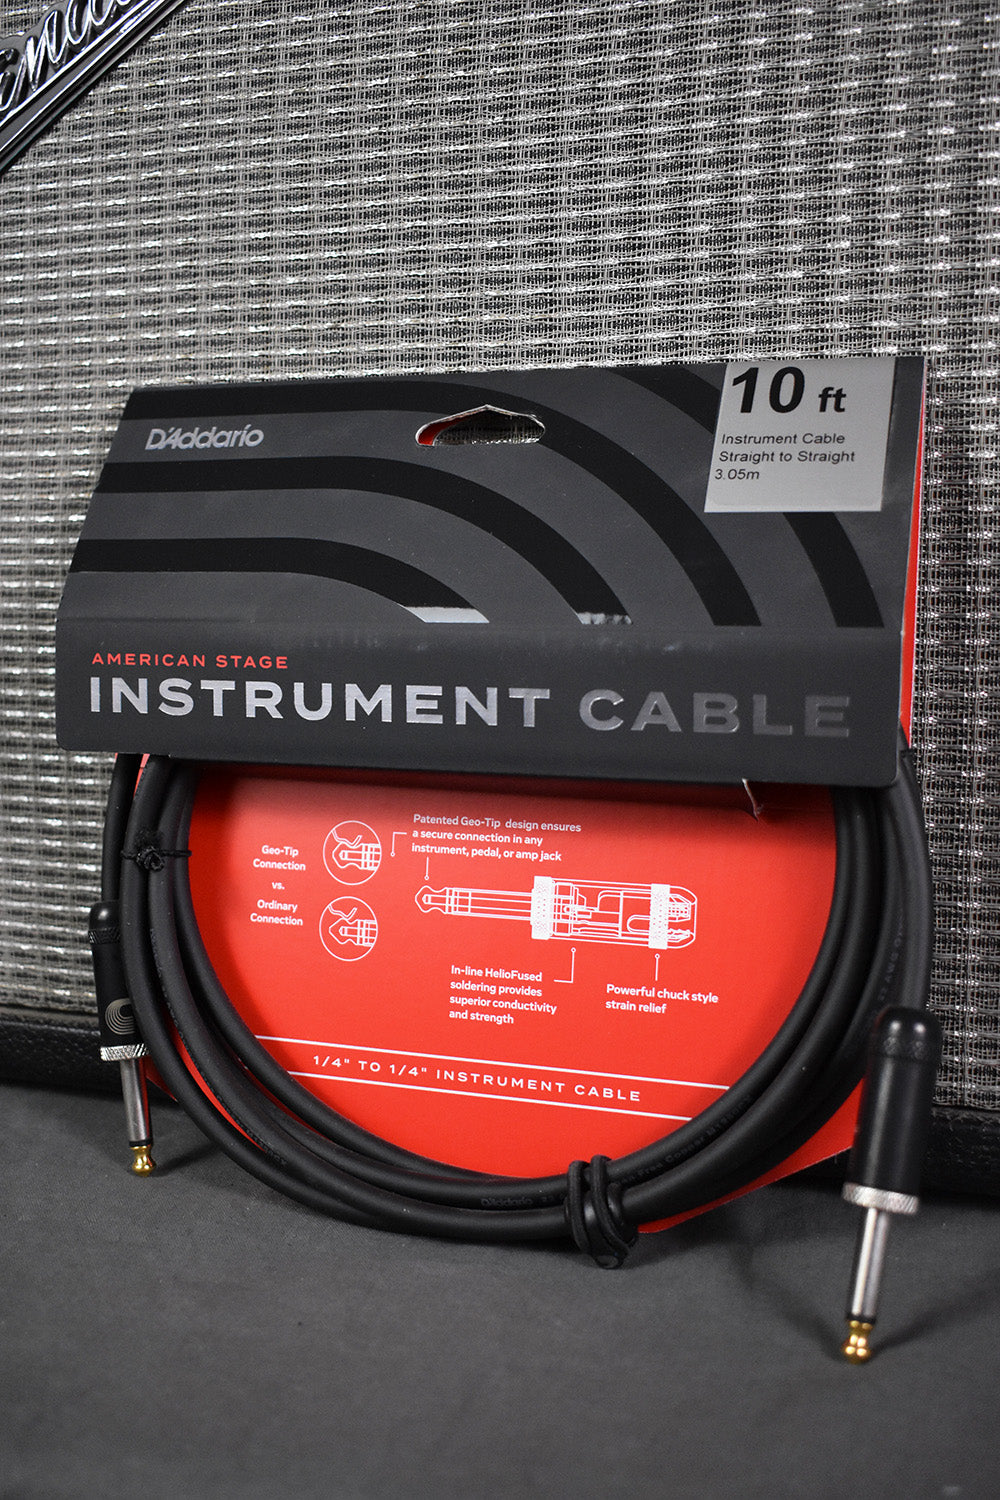 D'Addario Planet Waves PW-AMSG-10 American Stage Instrument Cable 10'